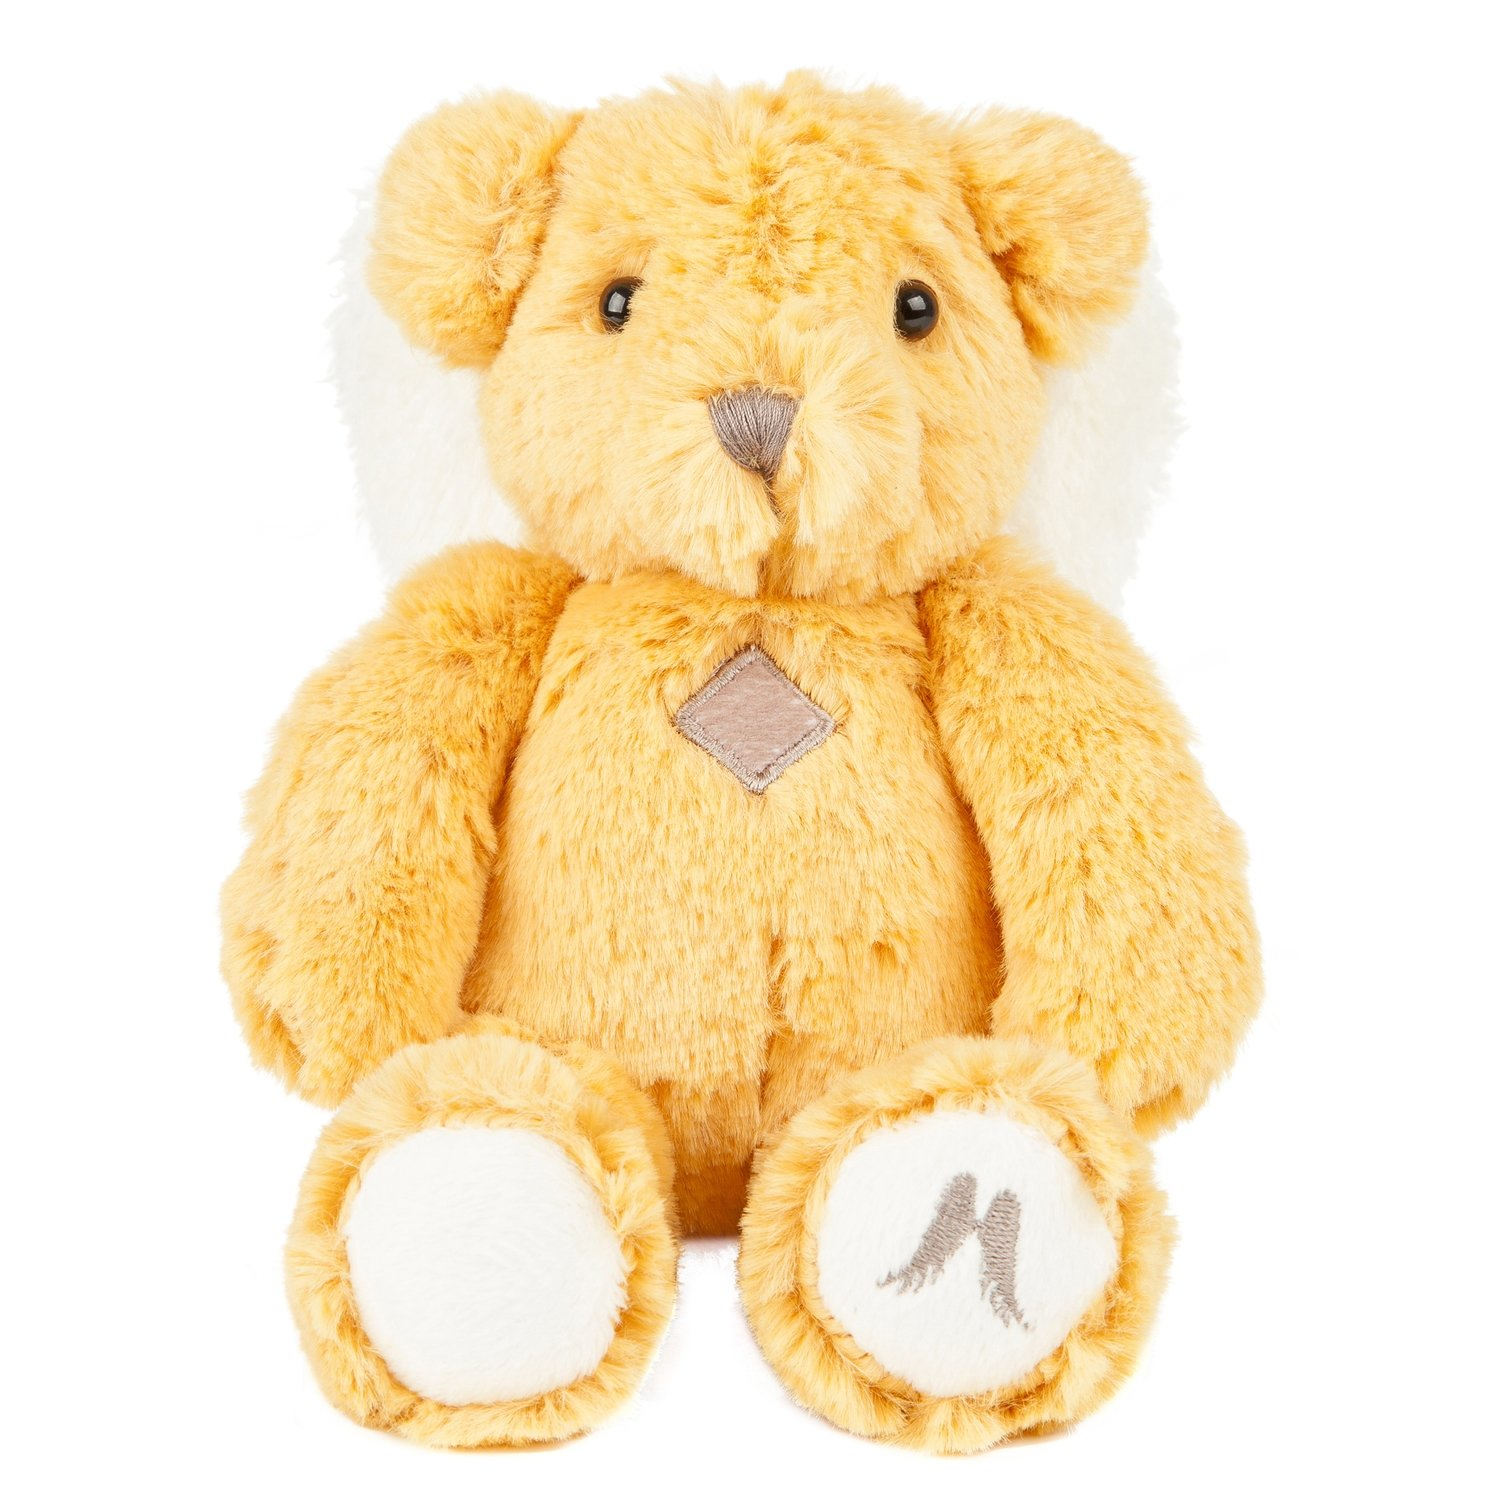 Teddy Bear Angel - Inspiration